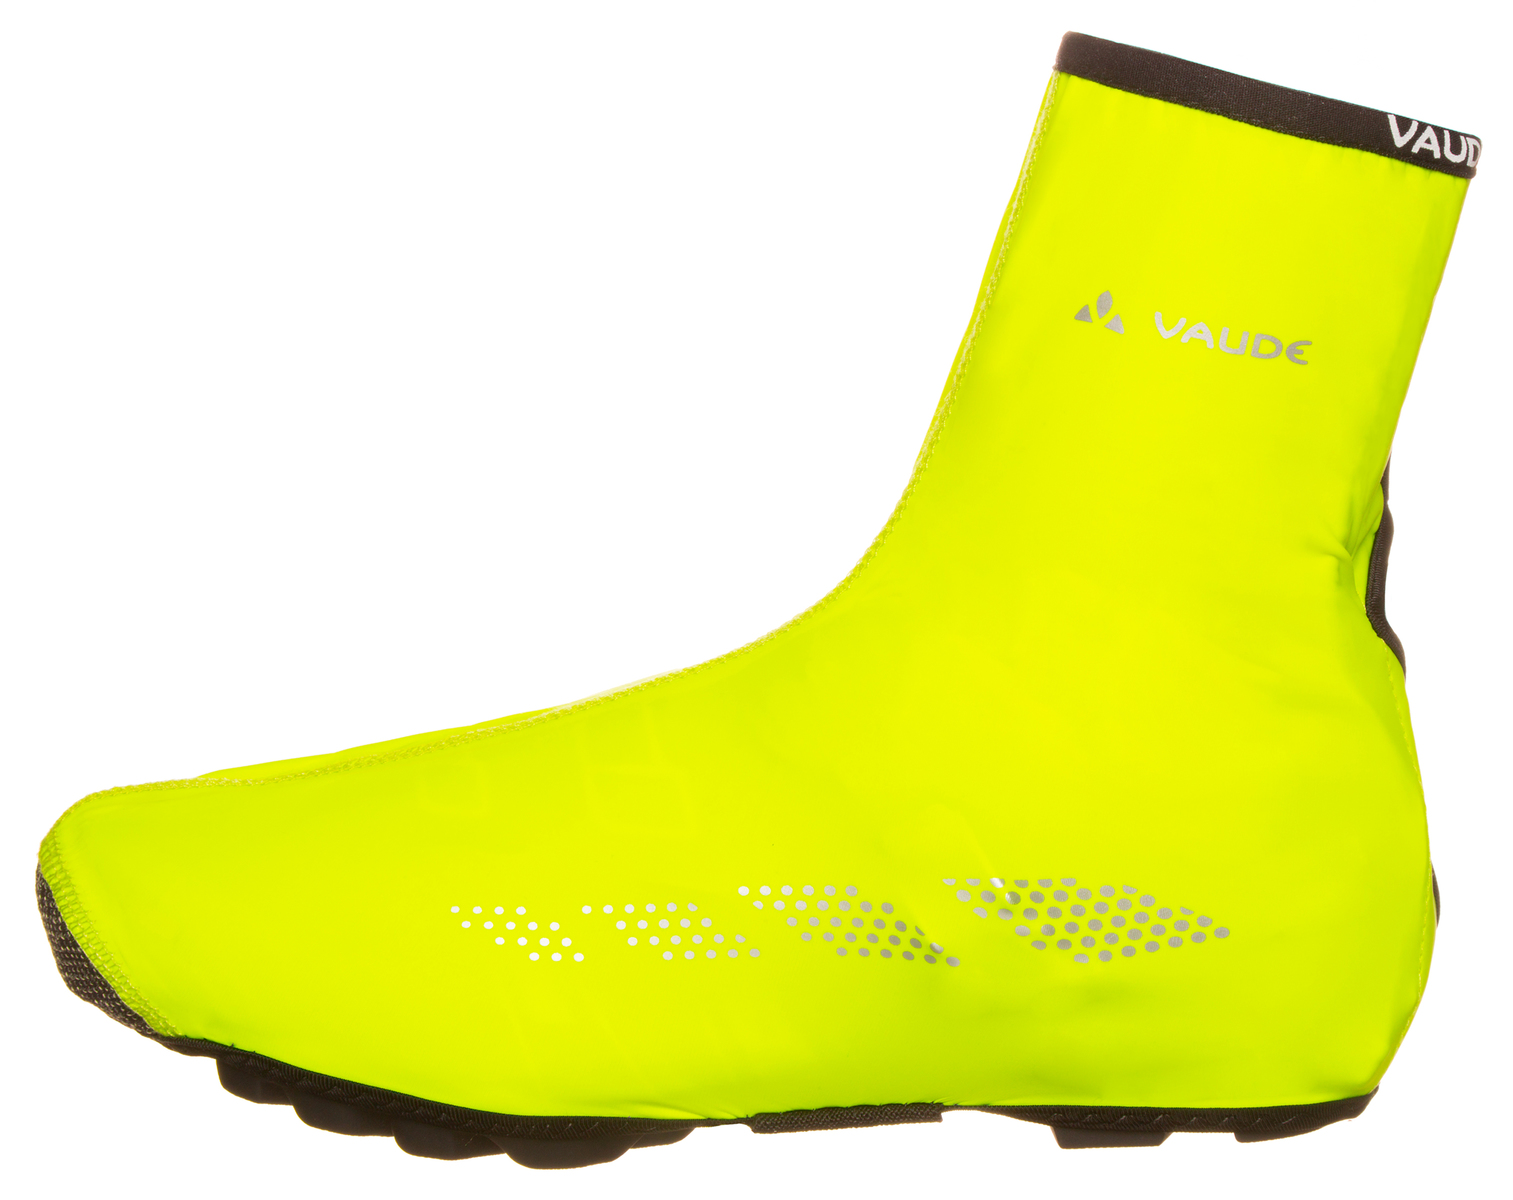 VAUDE Shoecover Wet Light II neon yellow Größe 36-39 - Total Normal Bikes - Onlineshop und E-Bike Fahrradgeschäft in St.Ingbert im Saarland